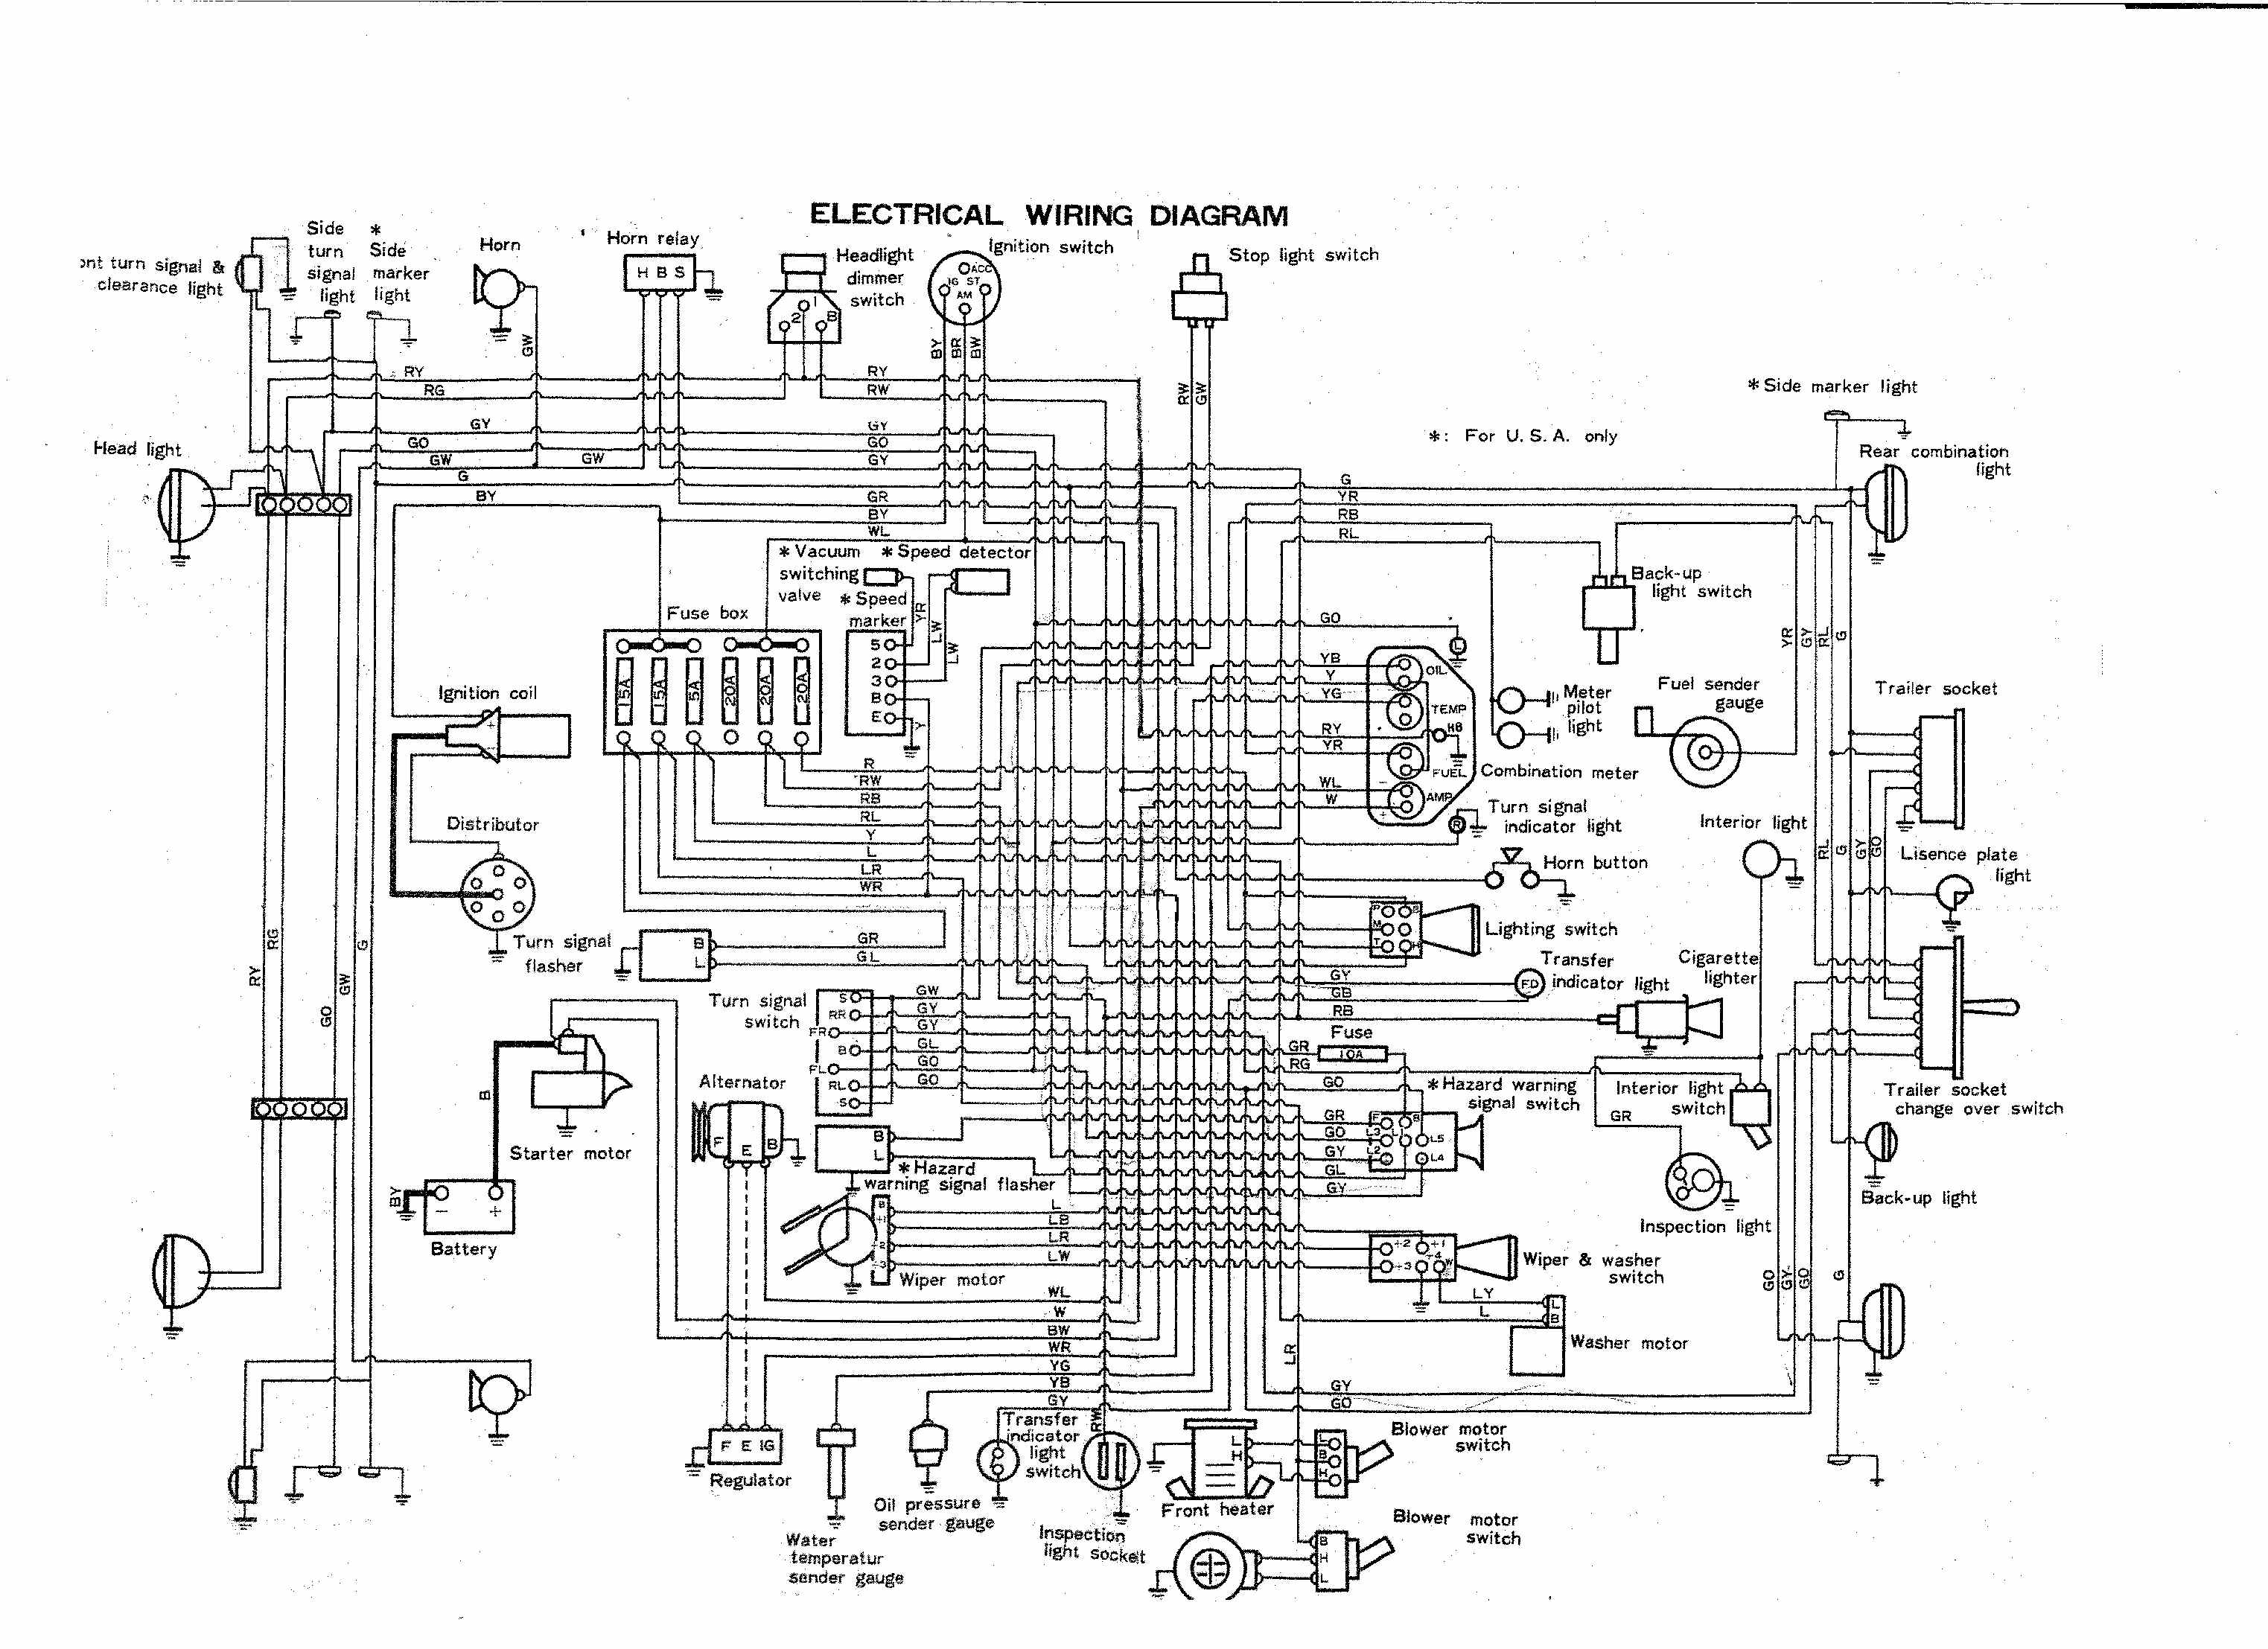 coolerman s electrical schematic and fsm file retrieval 1970 fj40 jpg